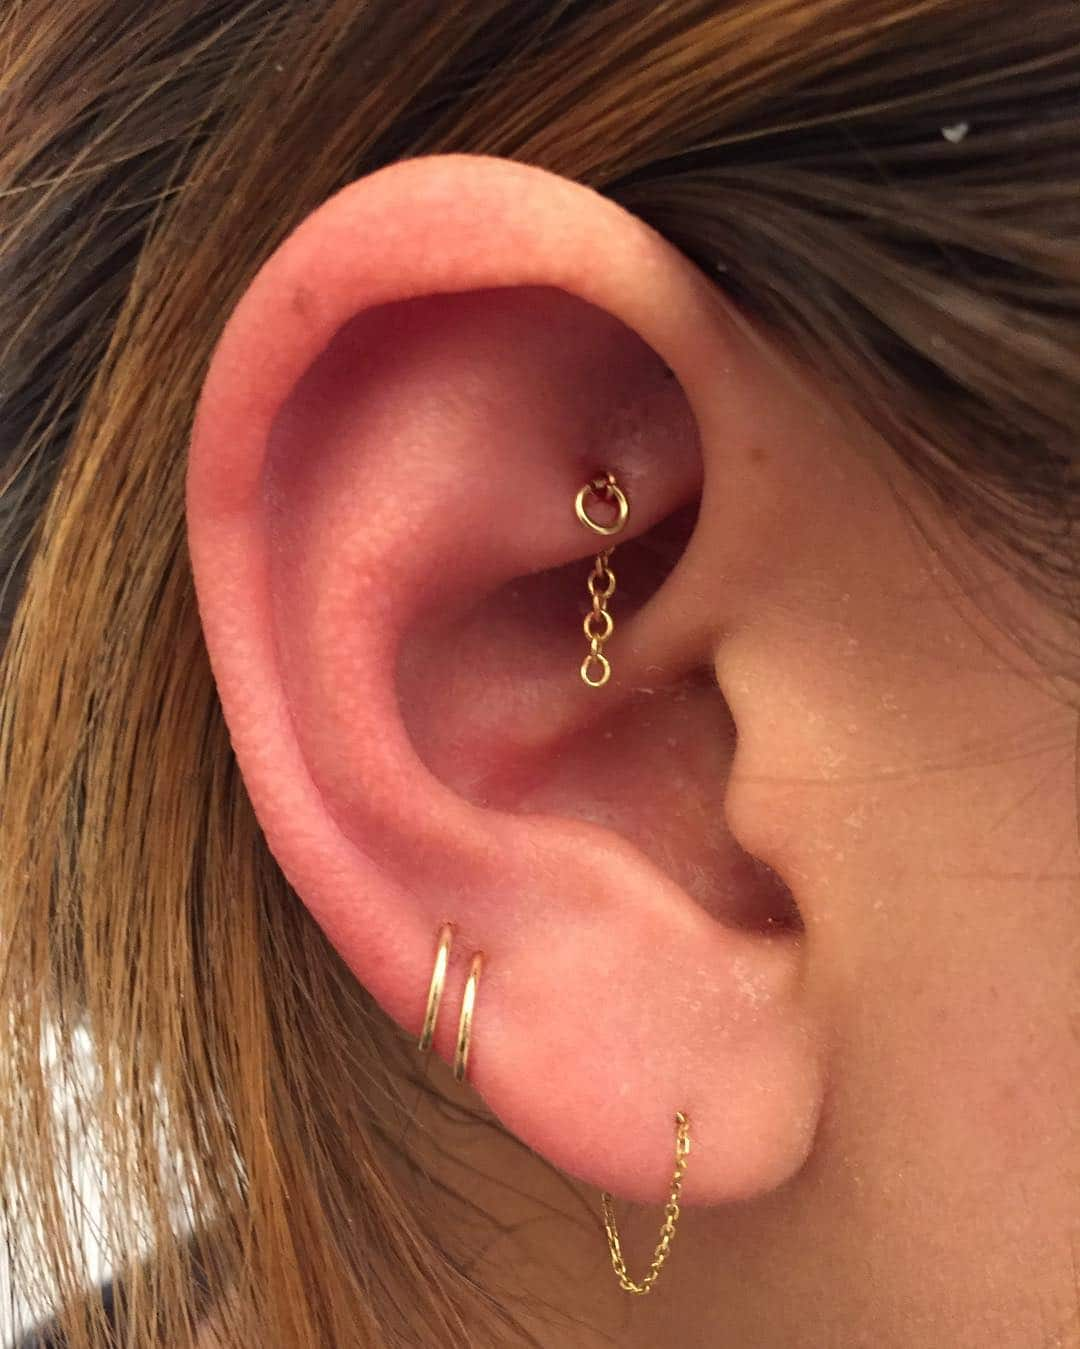 hight resolution of do your research about the type of piercing you want to get and how it will heal faster etc before you commit to getting one